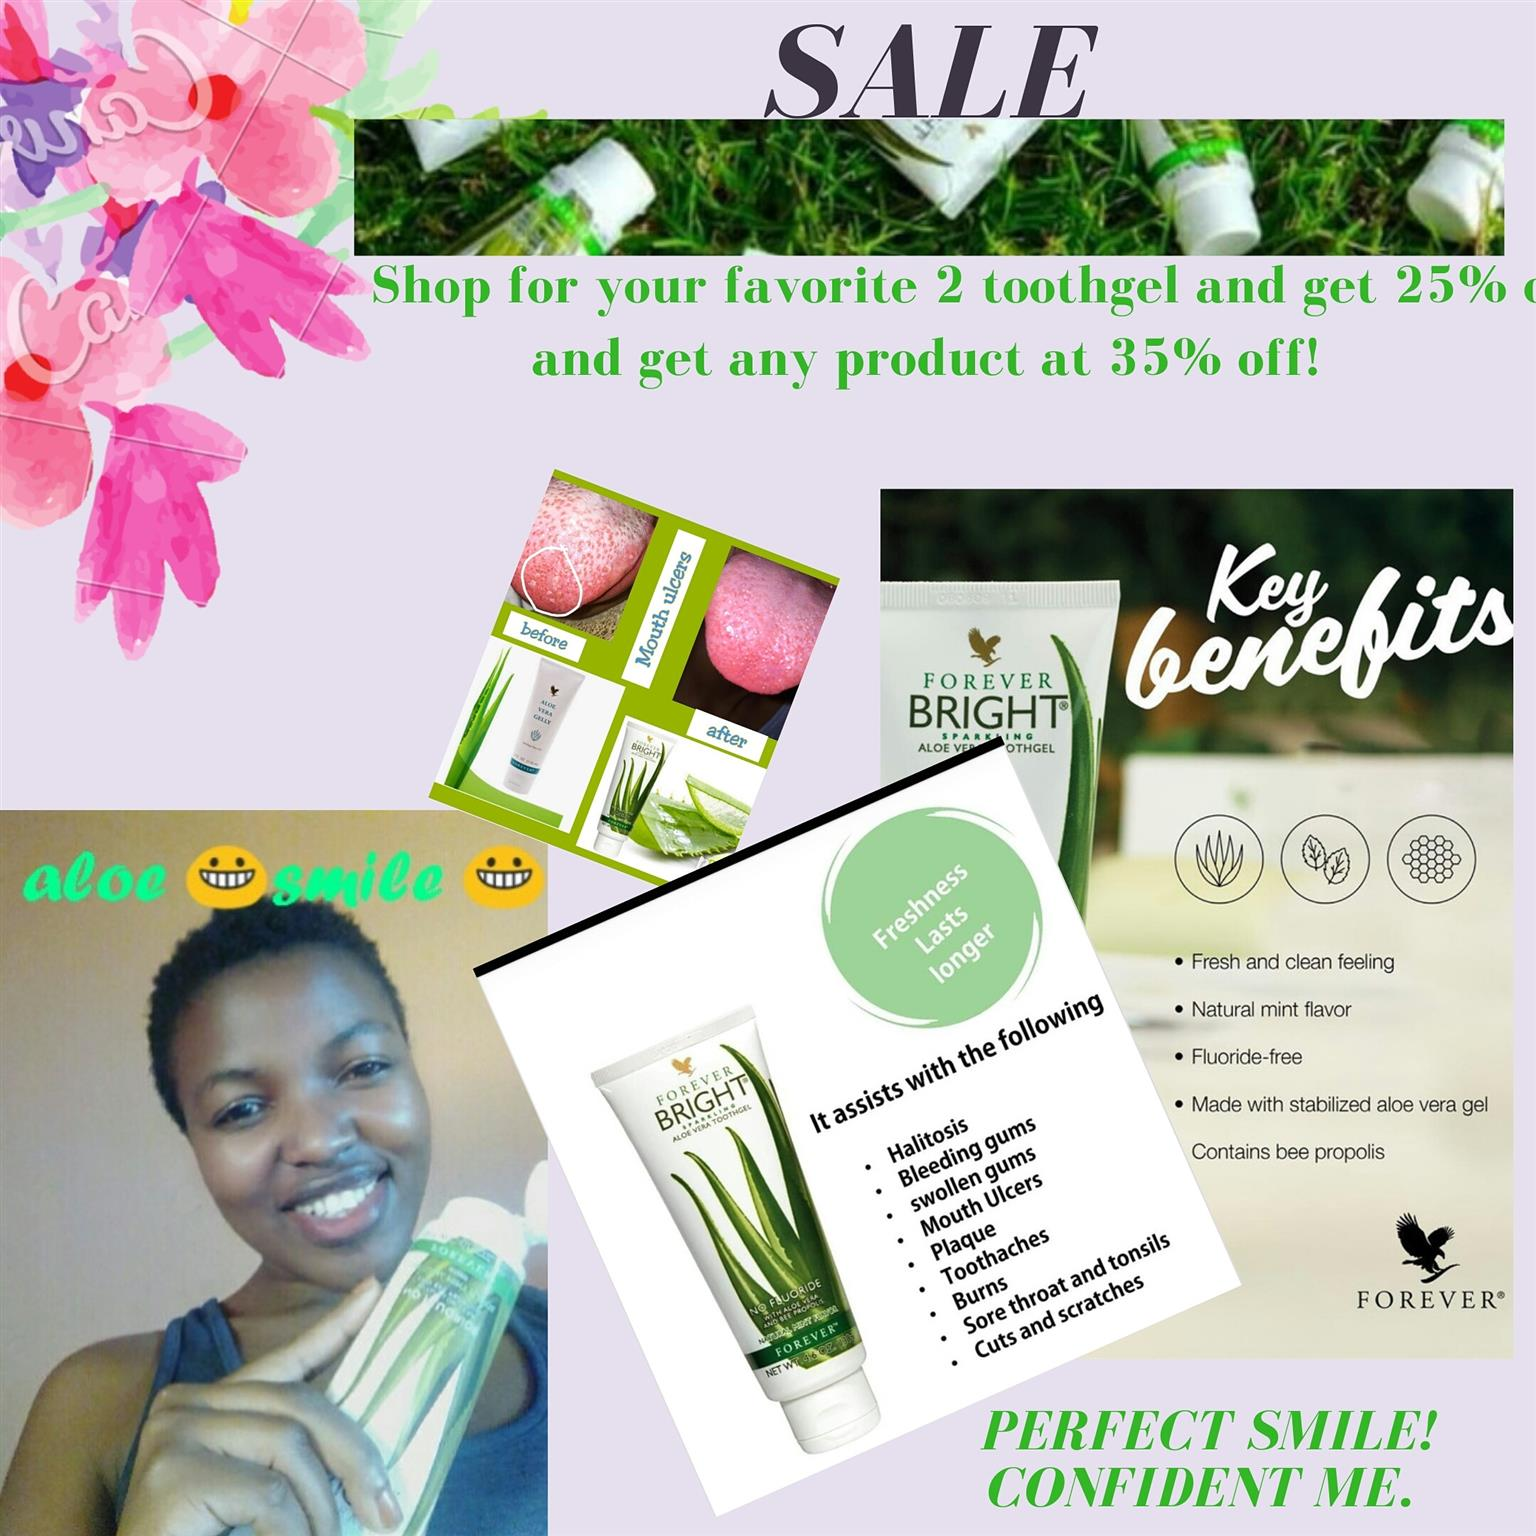 Forever living Bright toothgel special!